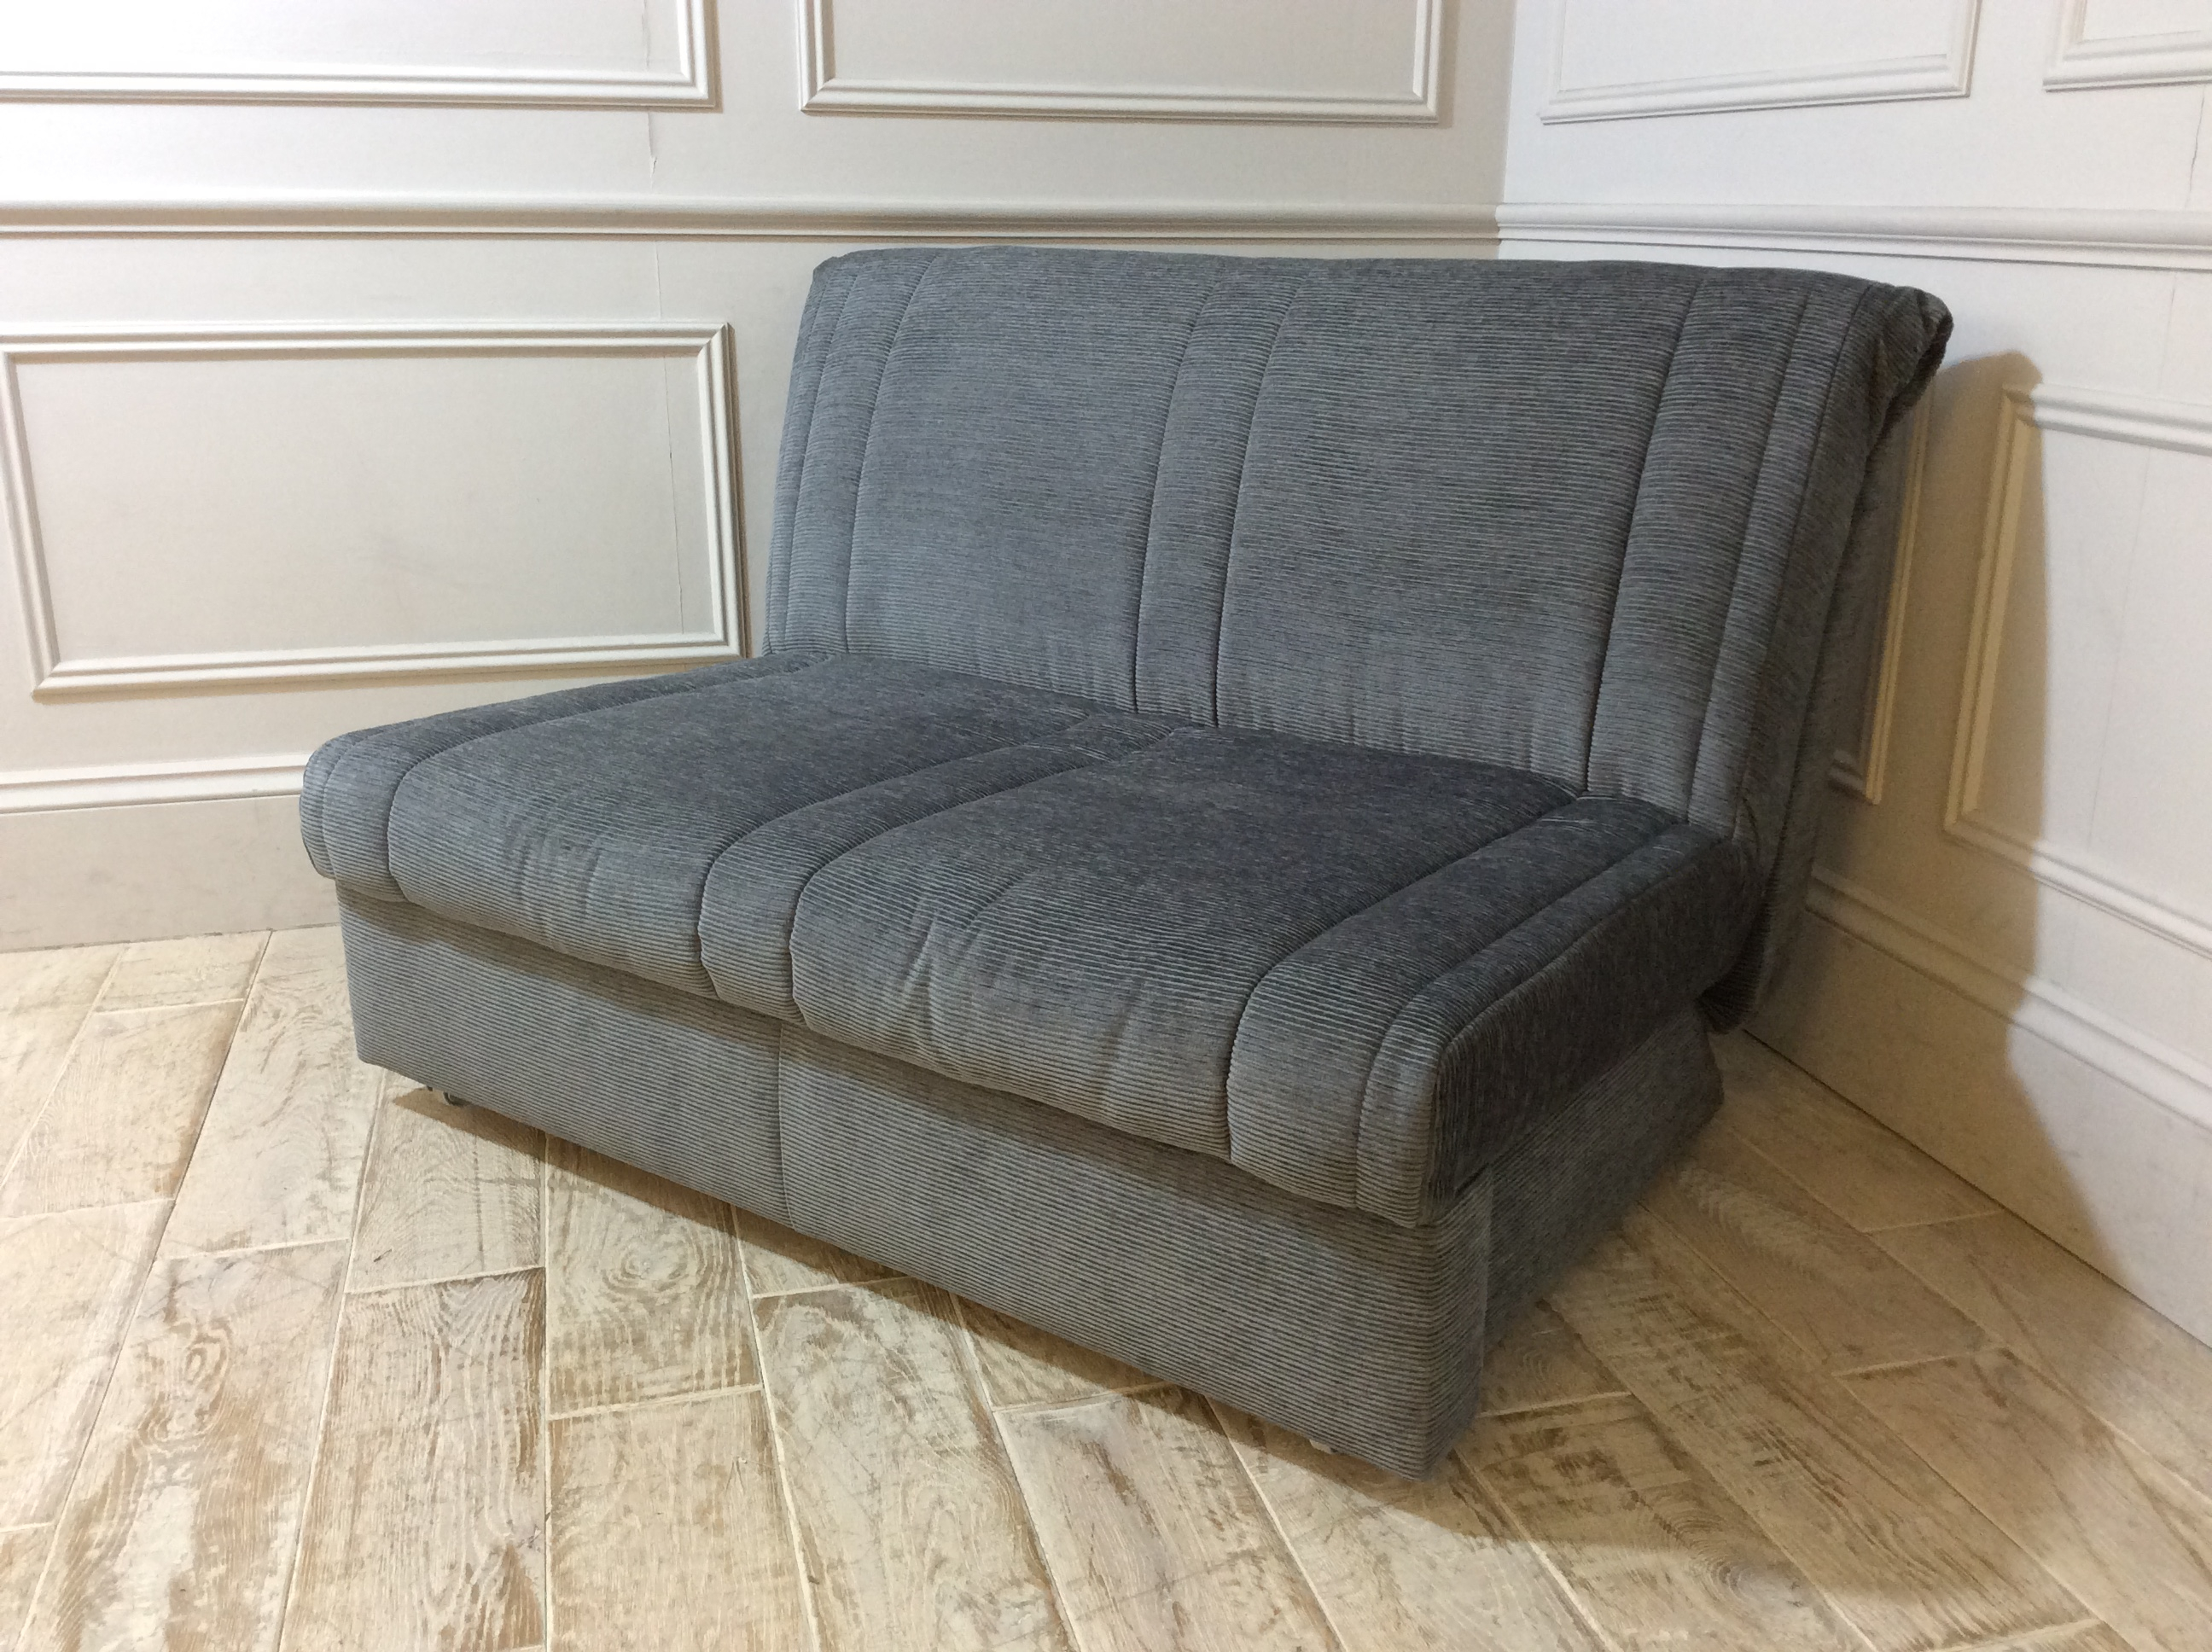 Launceston 2 Seater No Arms Sofa Bed in Falcon